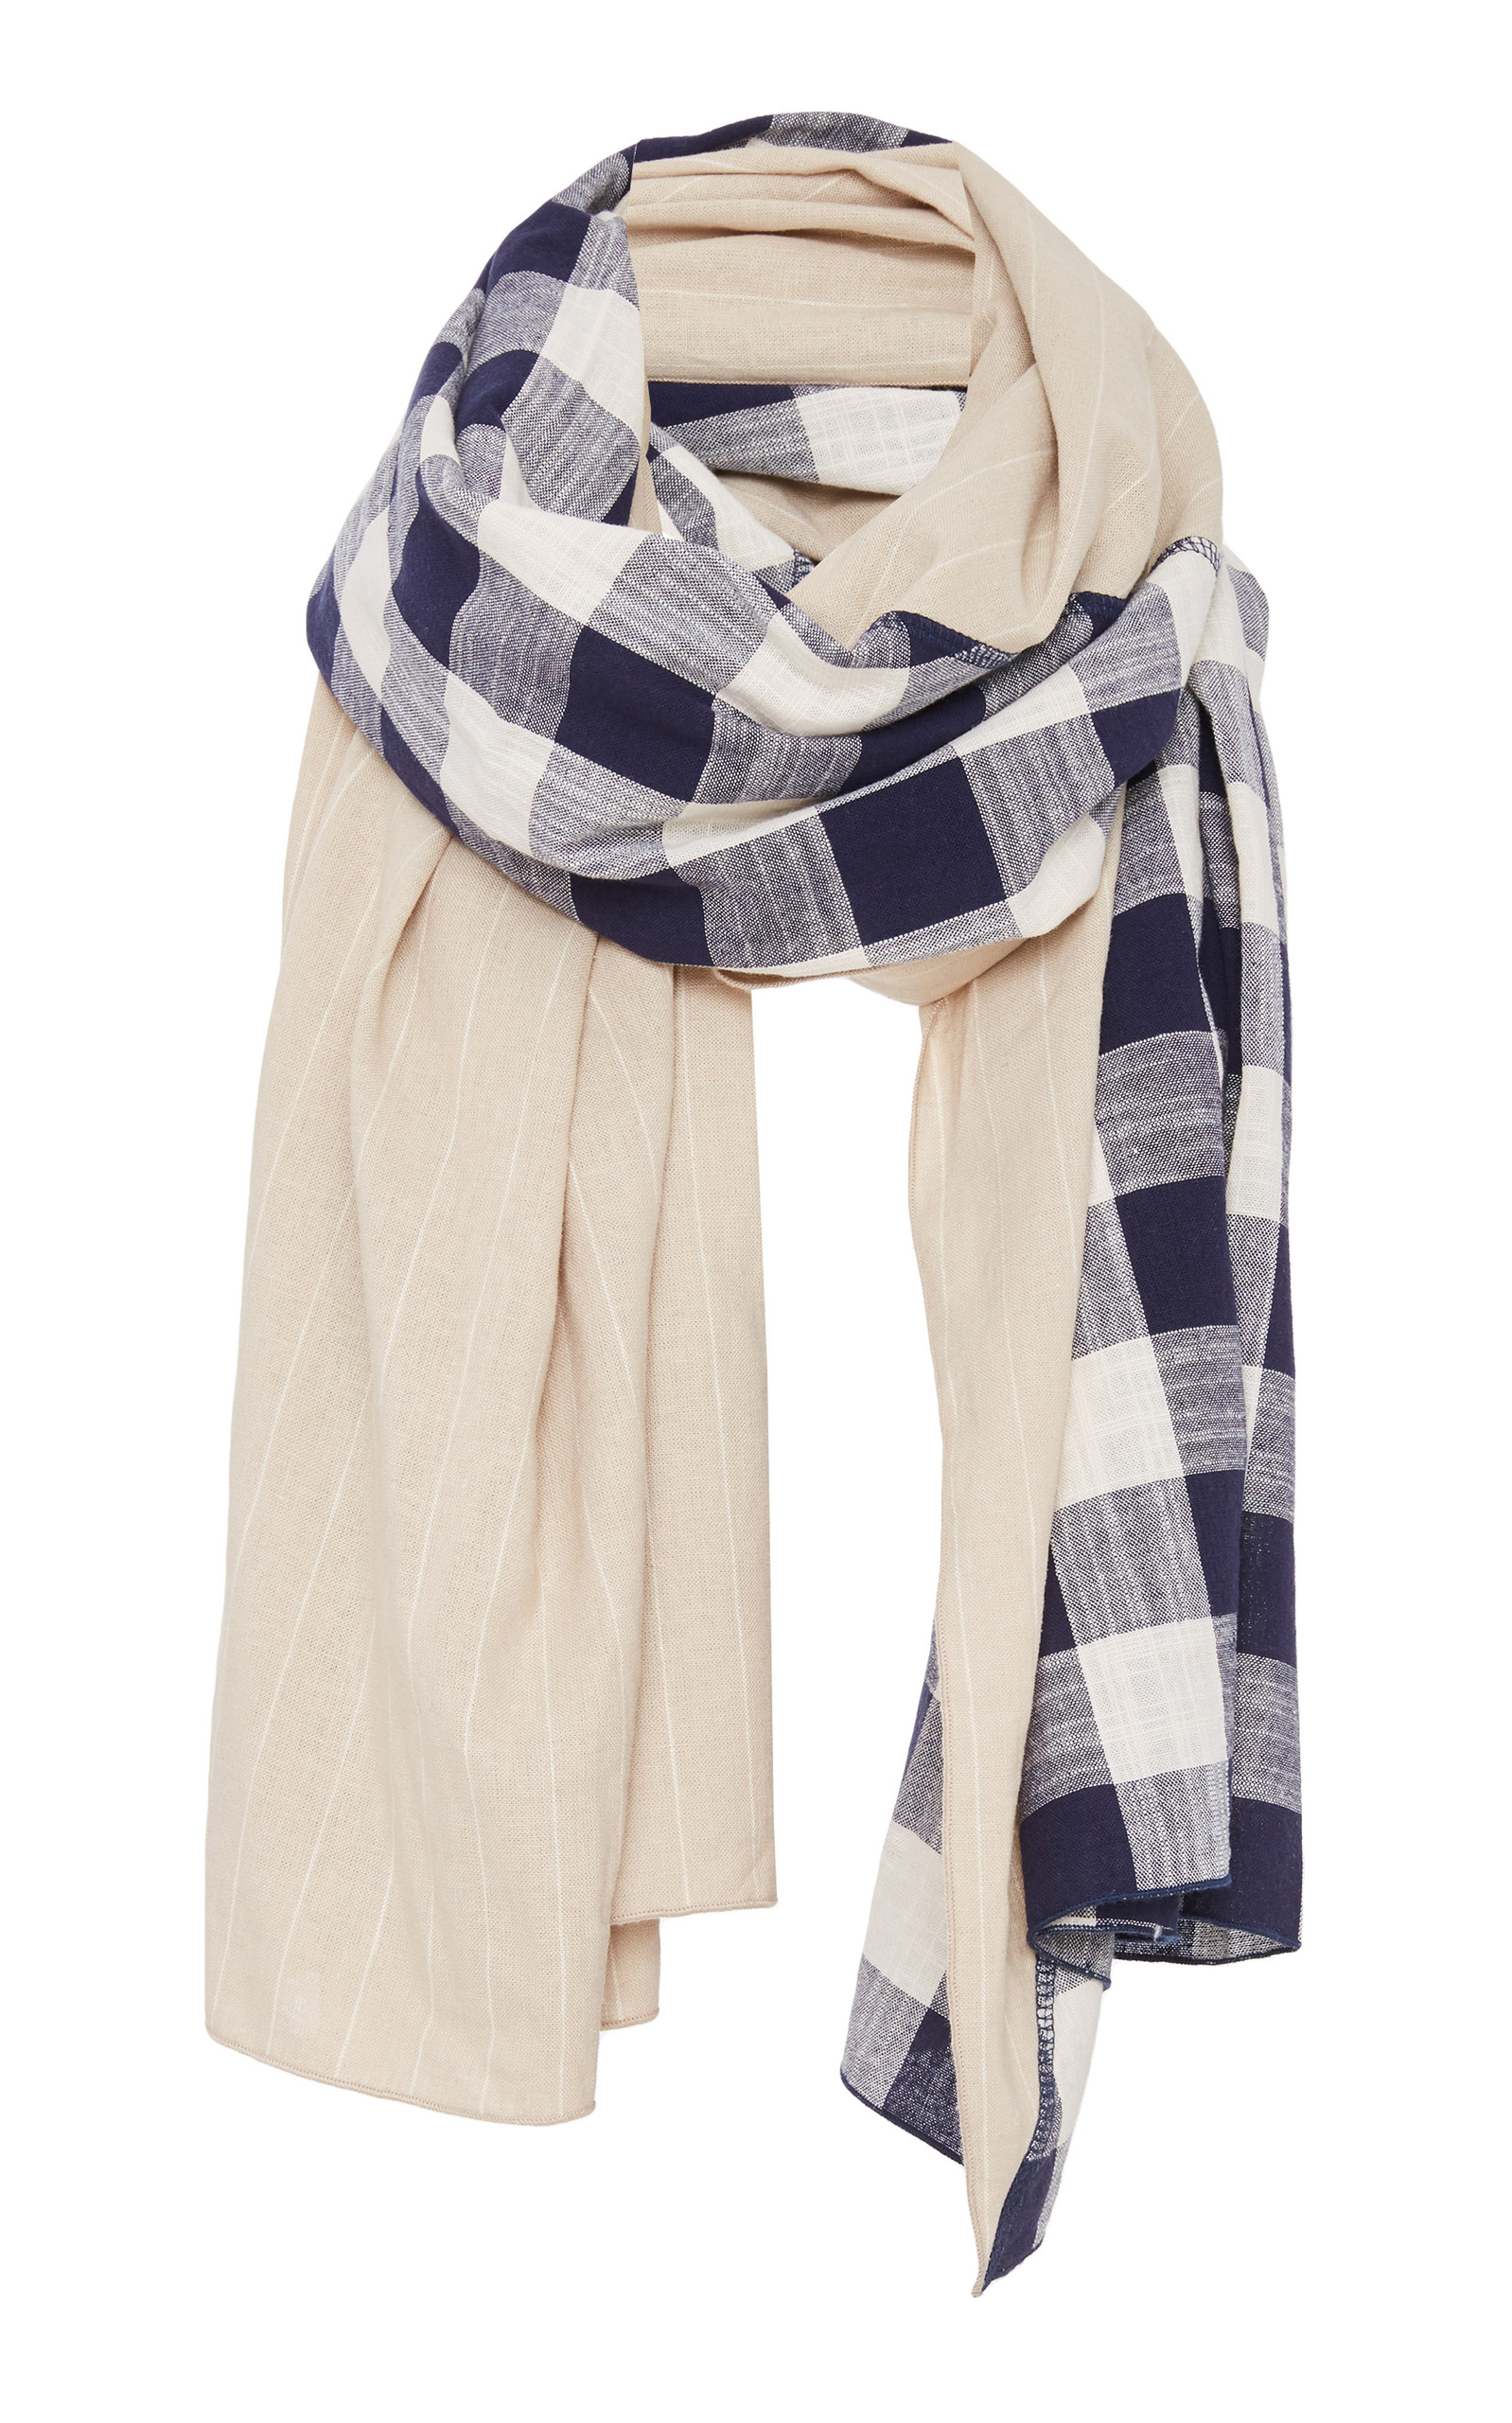 DONNI CHARM DIAGONAL PANELED CHECKED COTTON AND LINEN SCARF